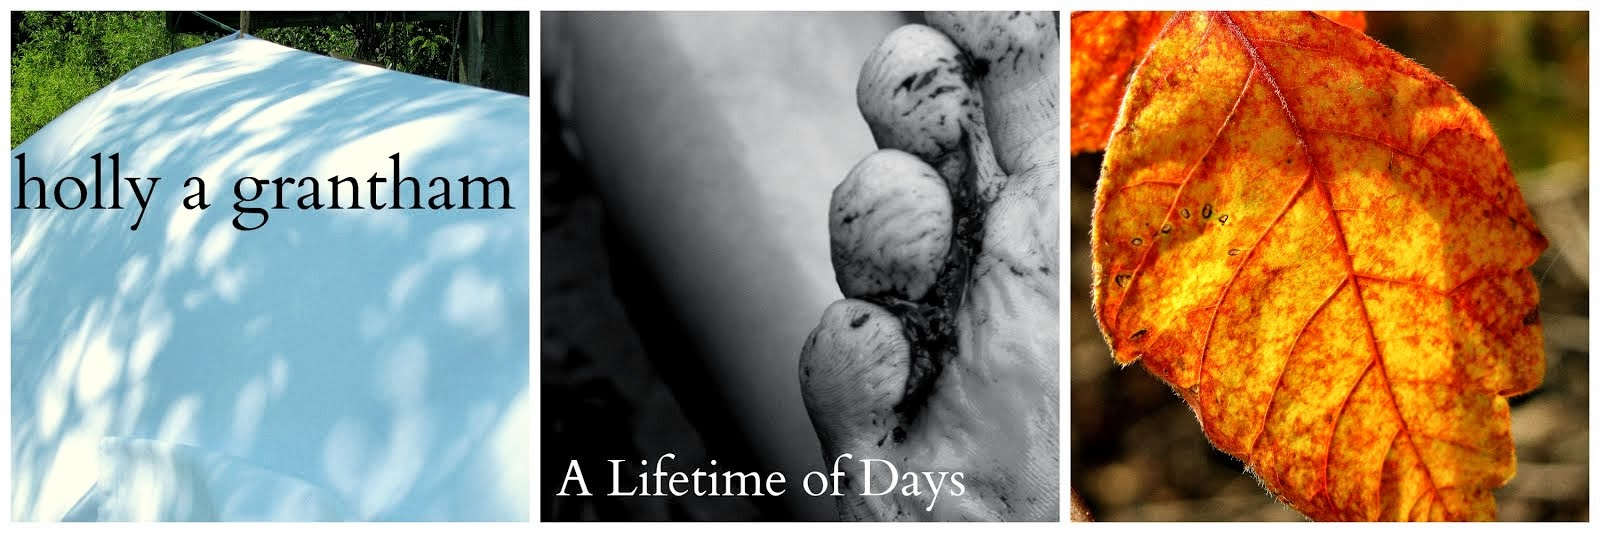 A Lifetime of Days